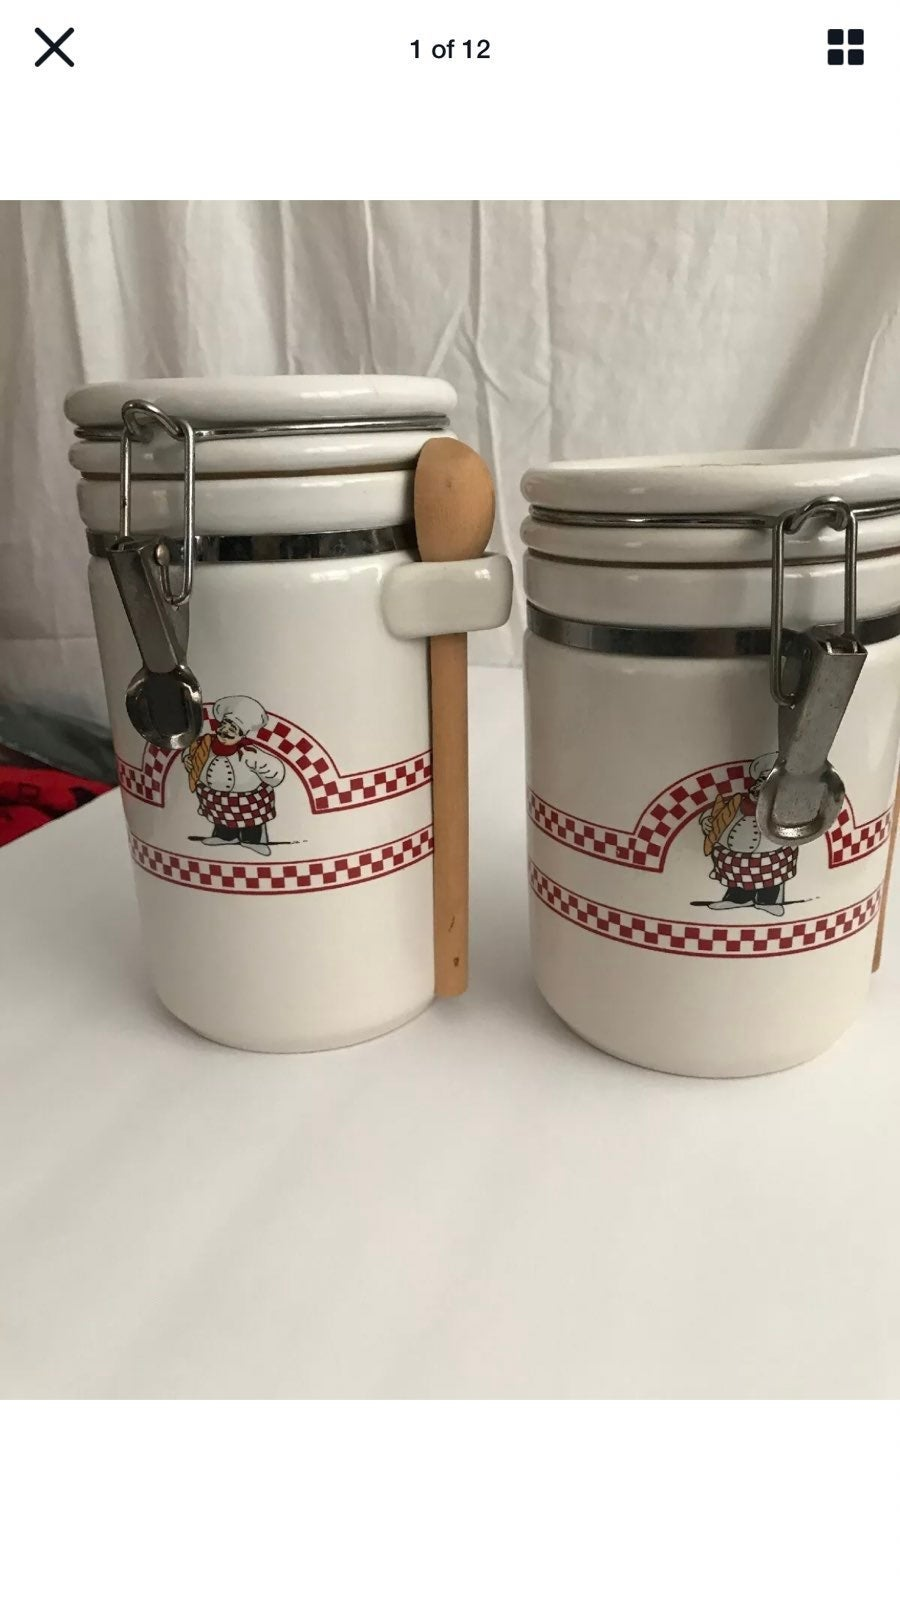 Fat Chef Kitchen Ceramic Containers Jars